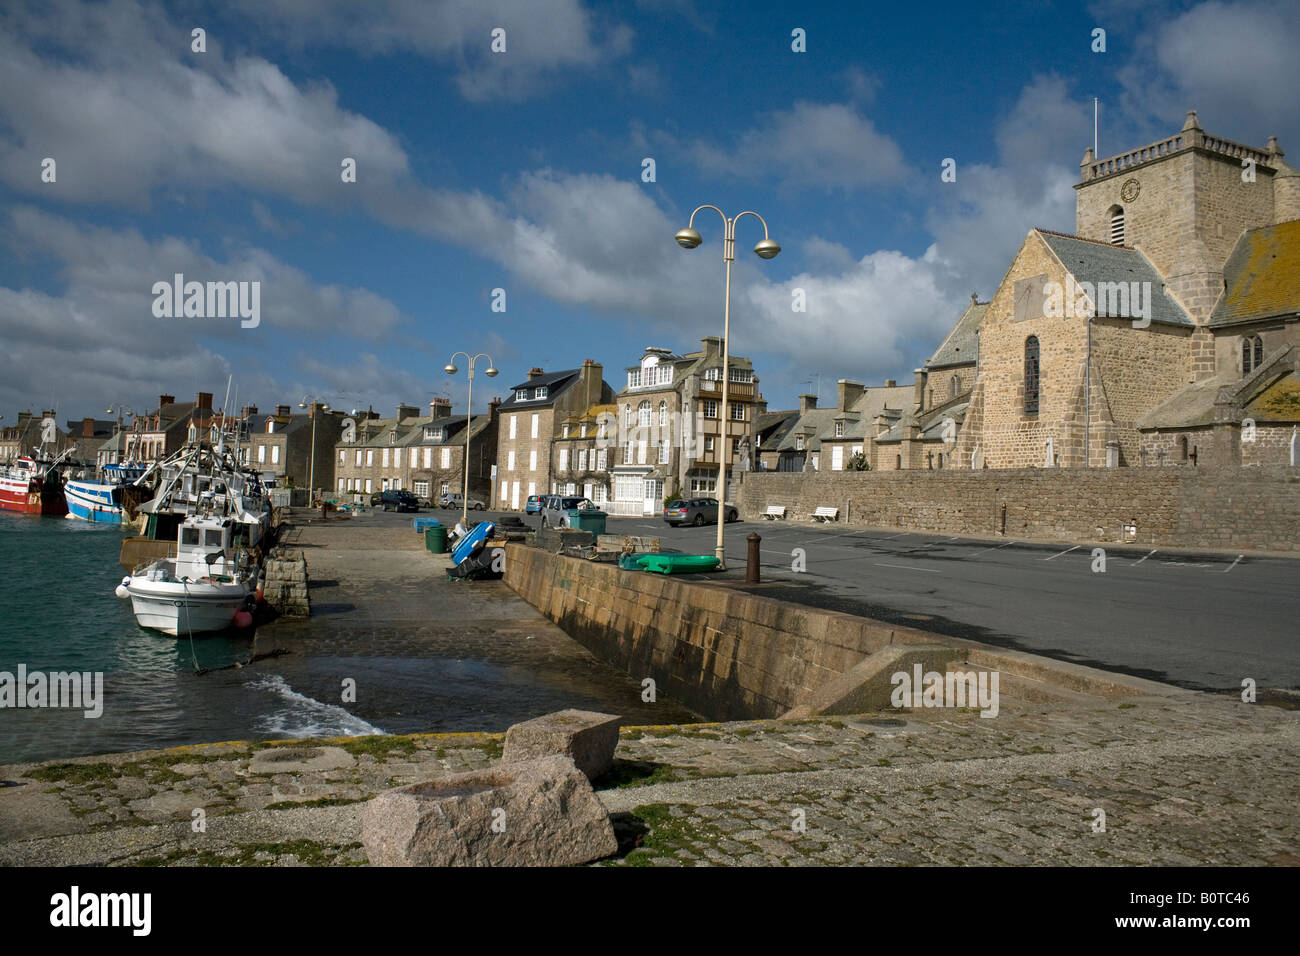 Pituresque harbour Barfleur in Normandy - Stock Image